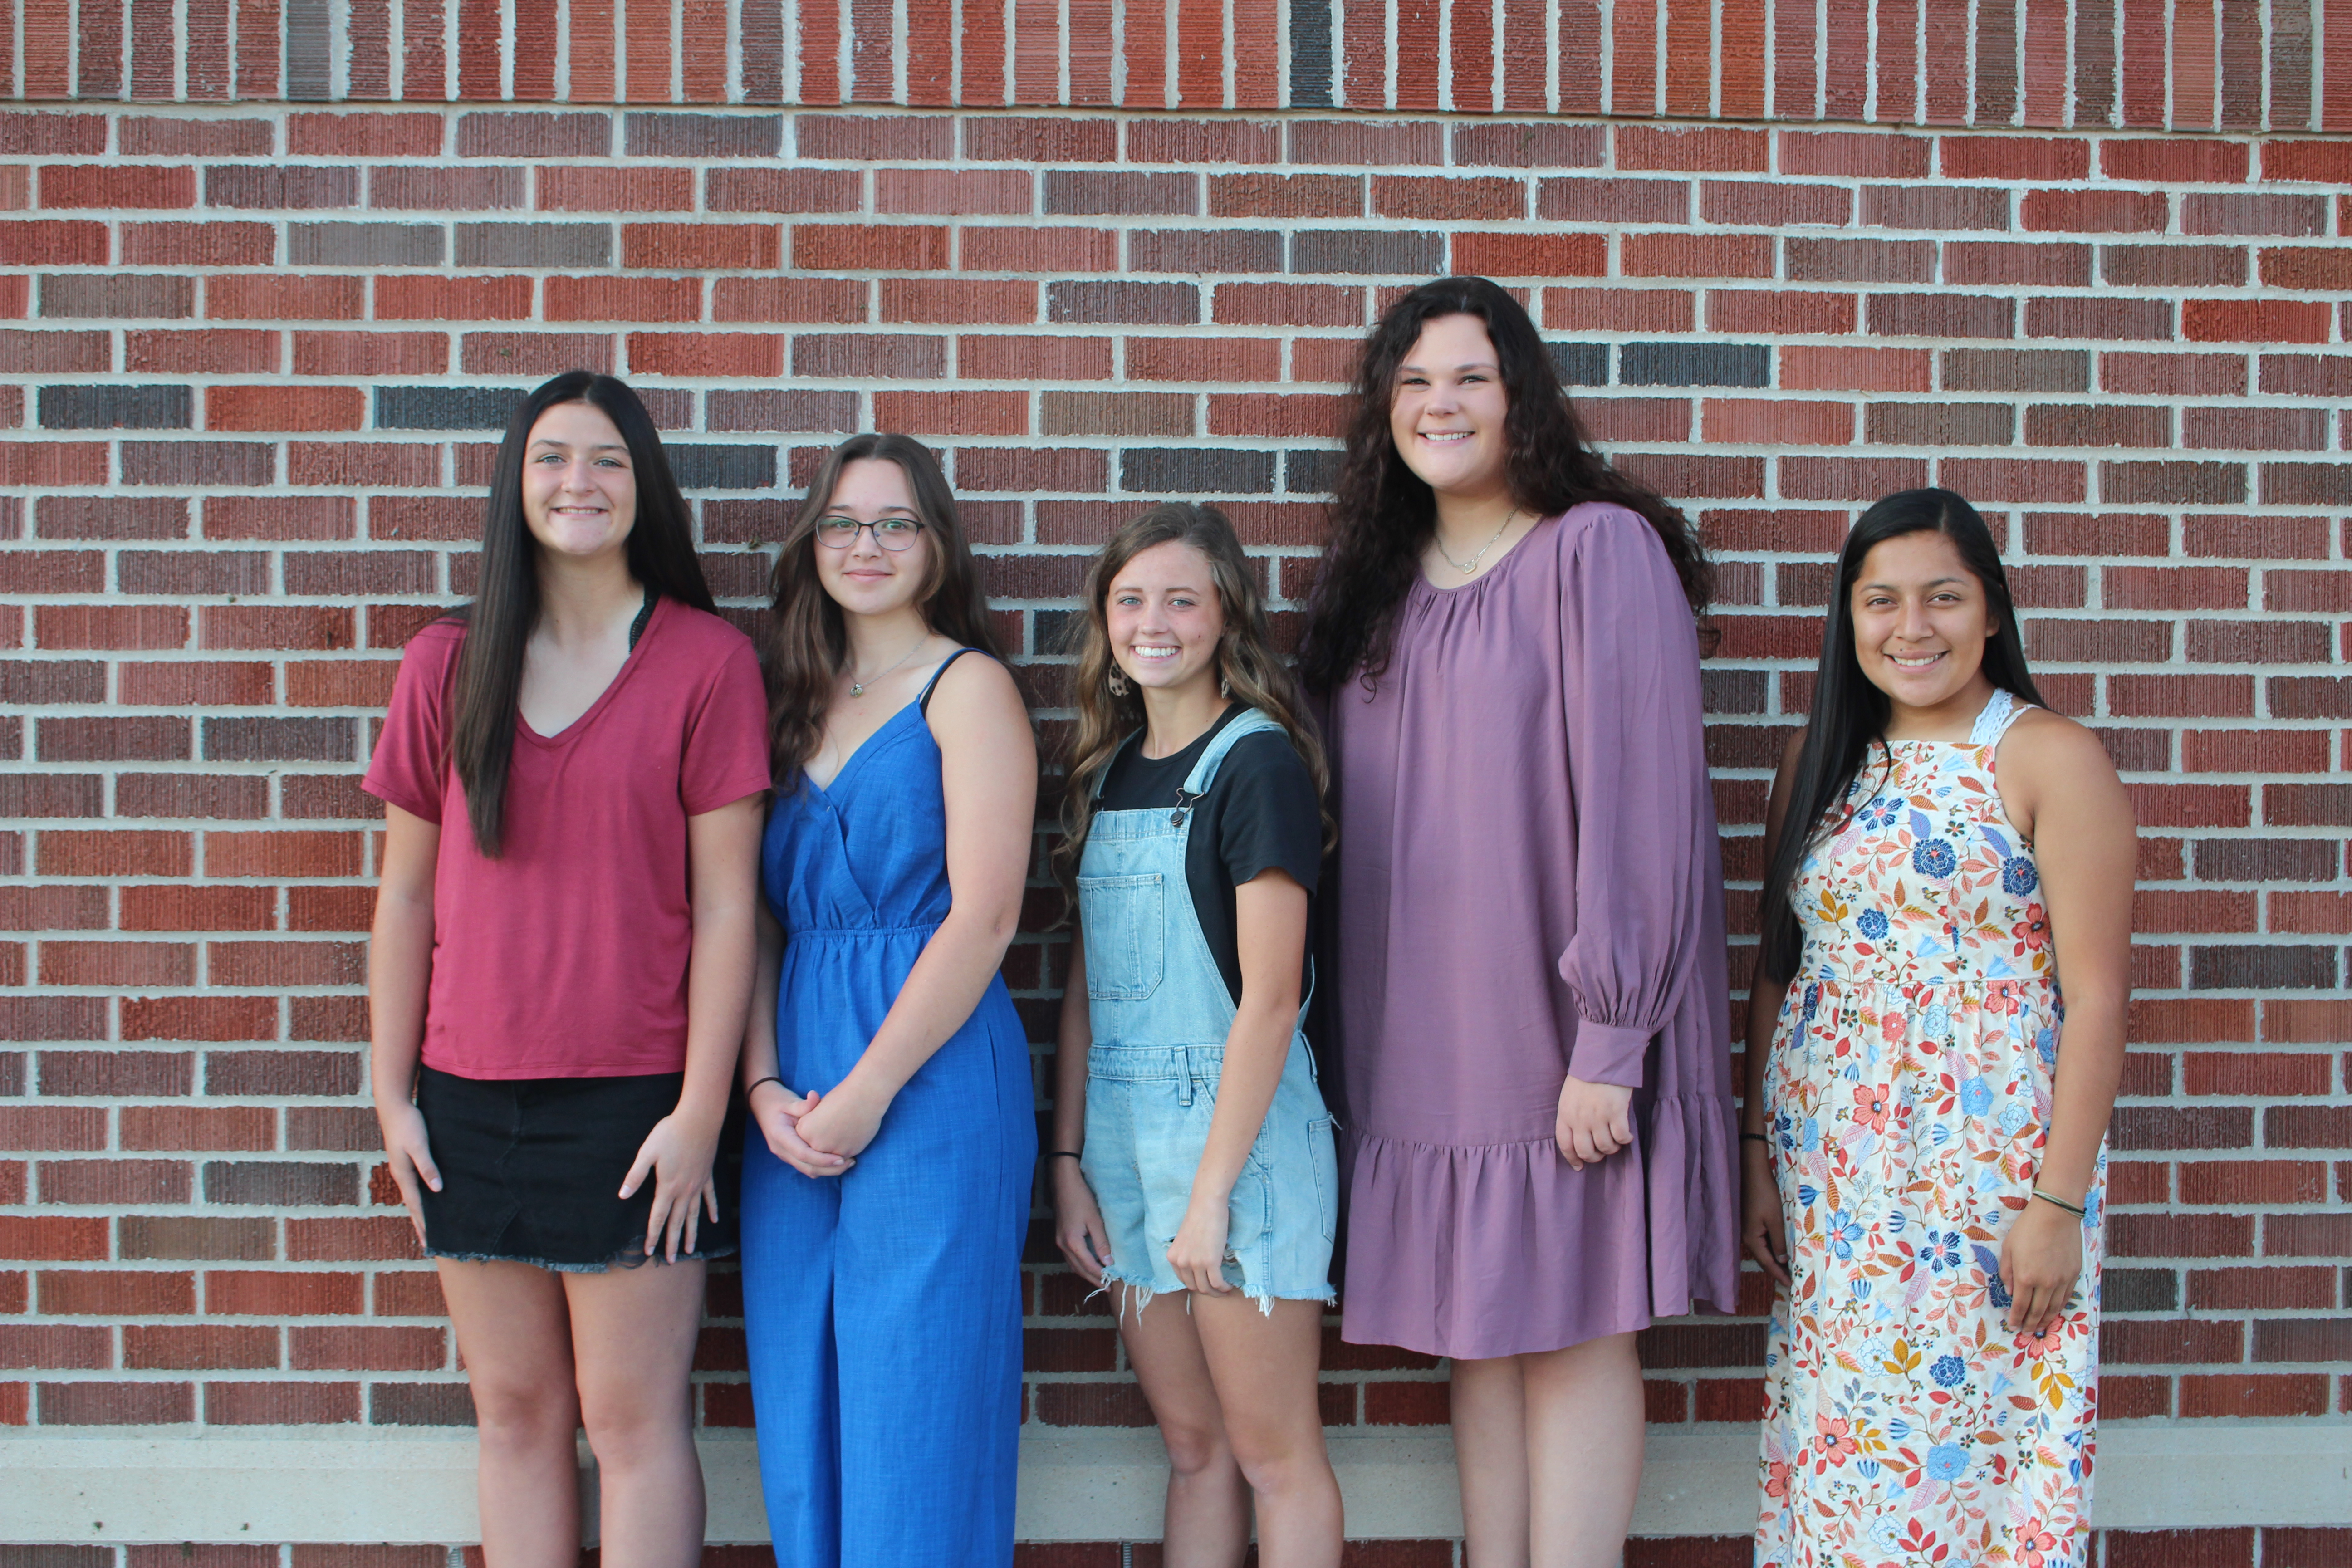 2021 Homecoming Queen Candidates